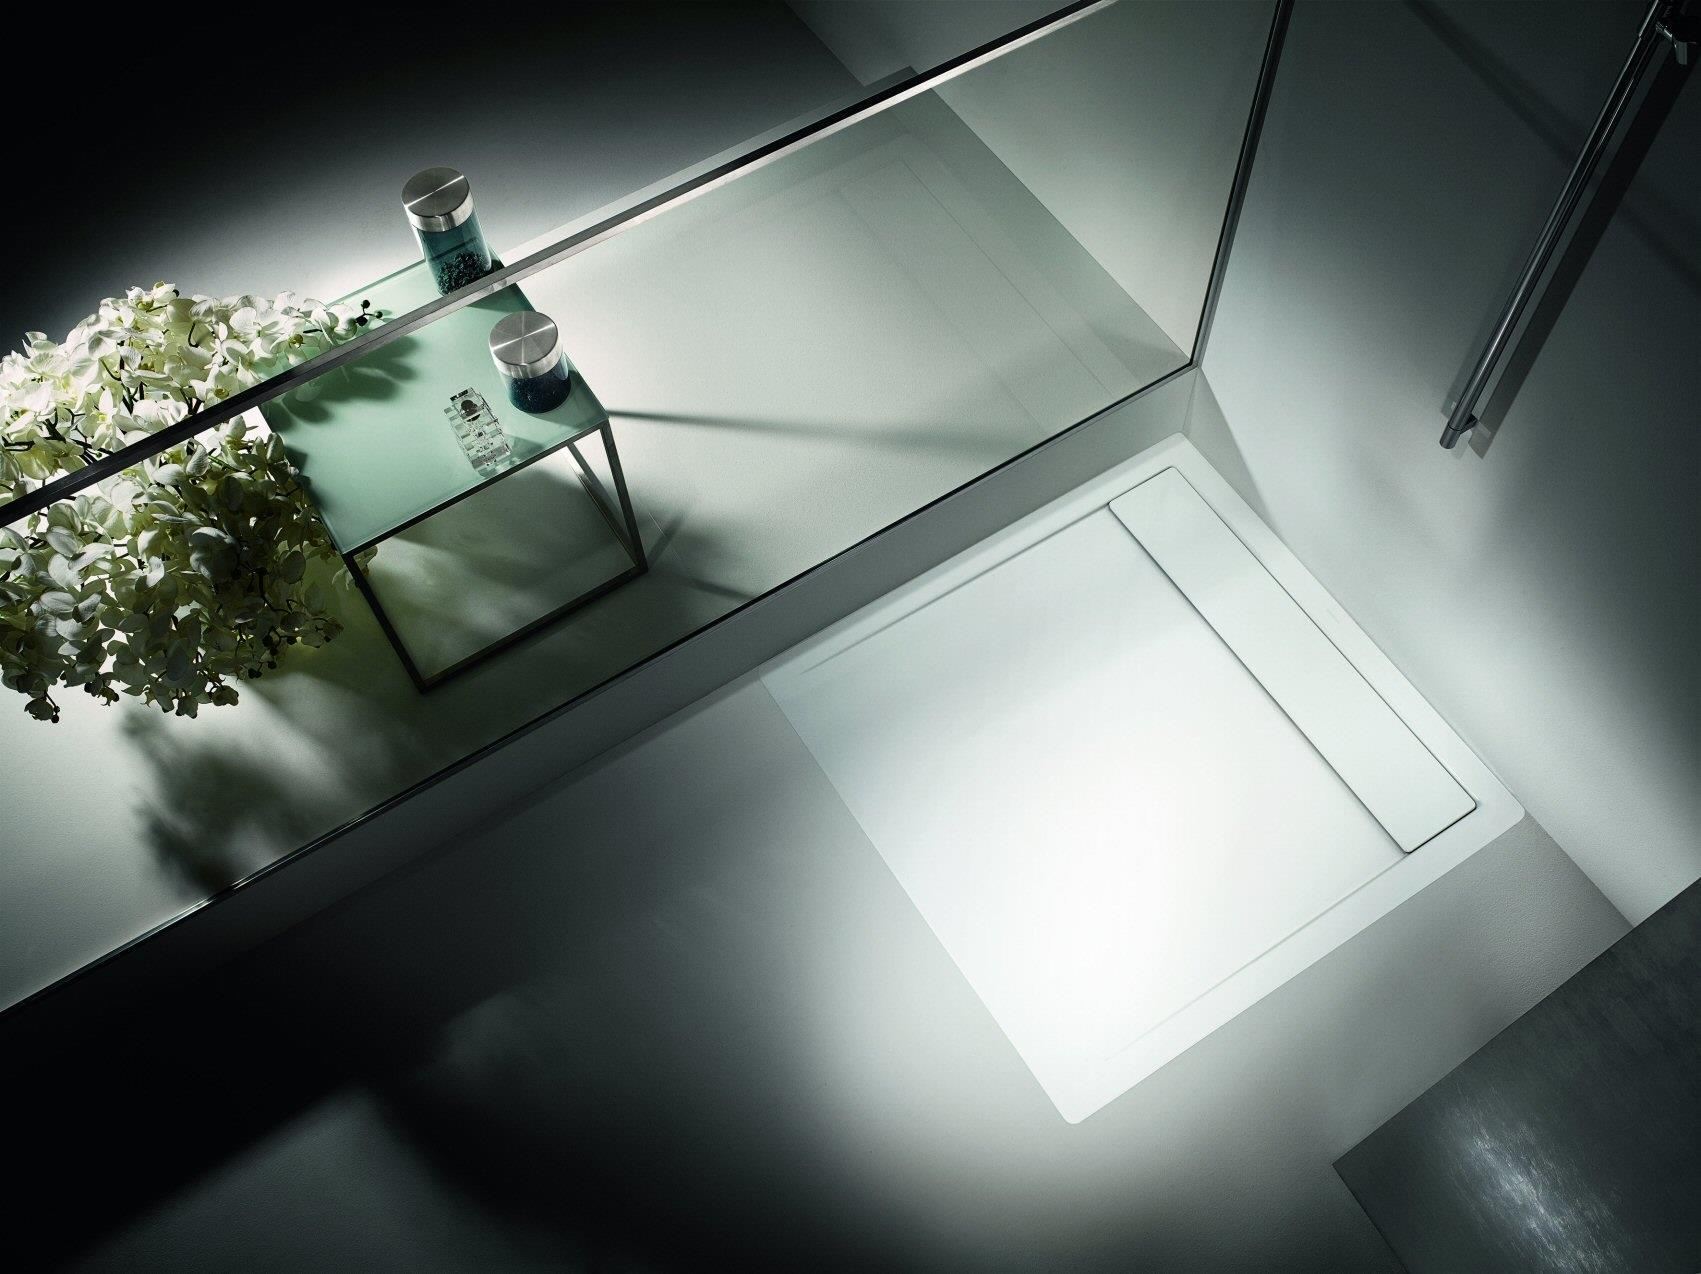 Kaldewei Xetis Kaldewei Showers Go Large In Small Spaces Features Building